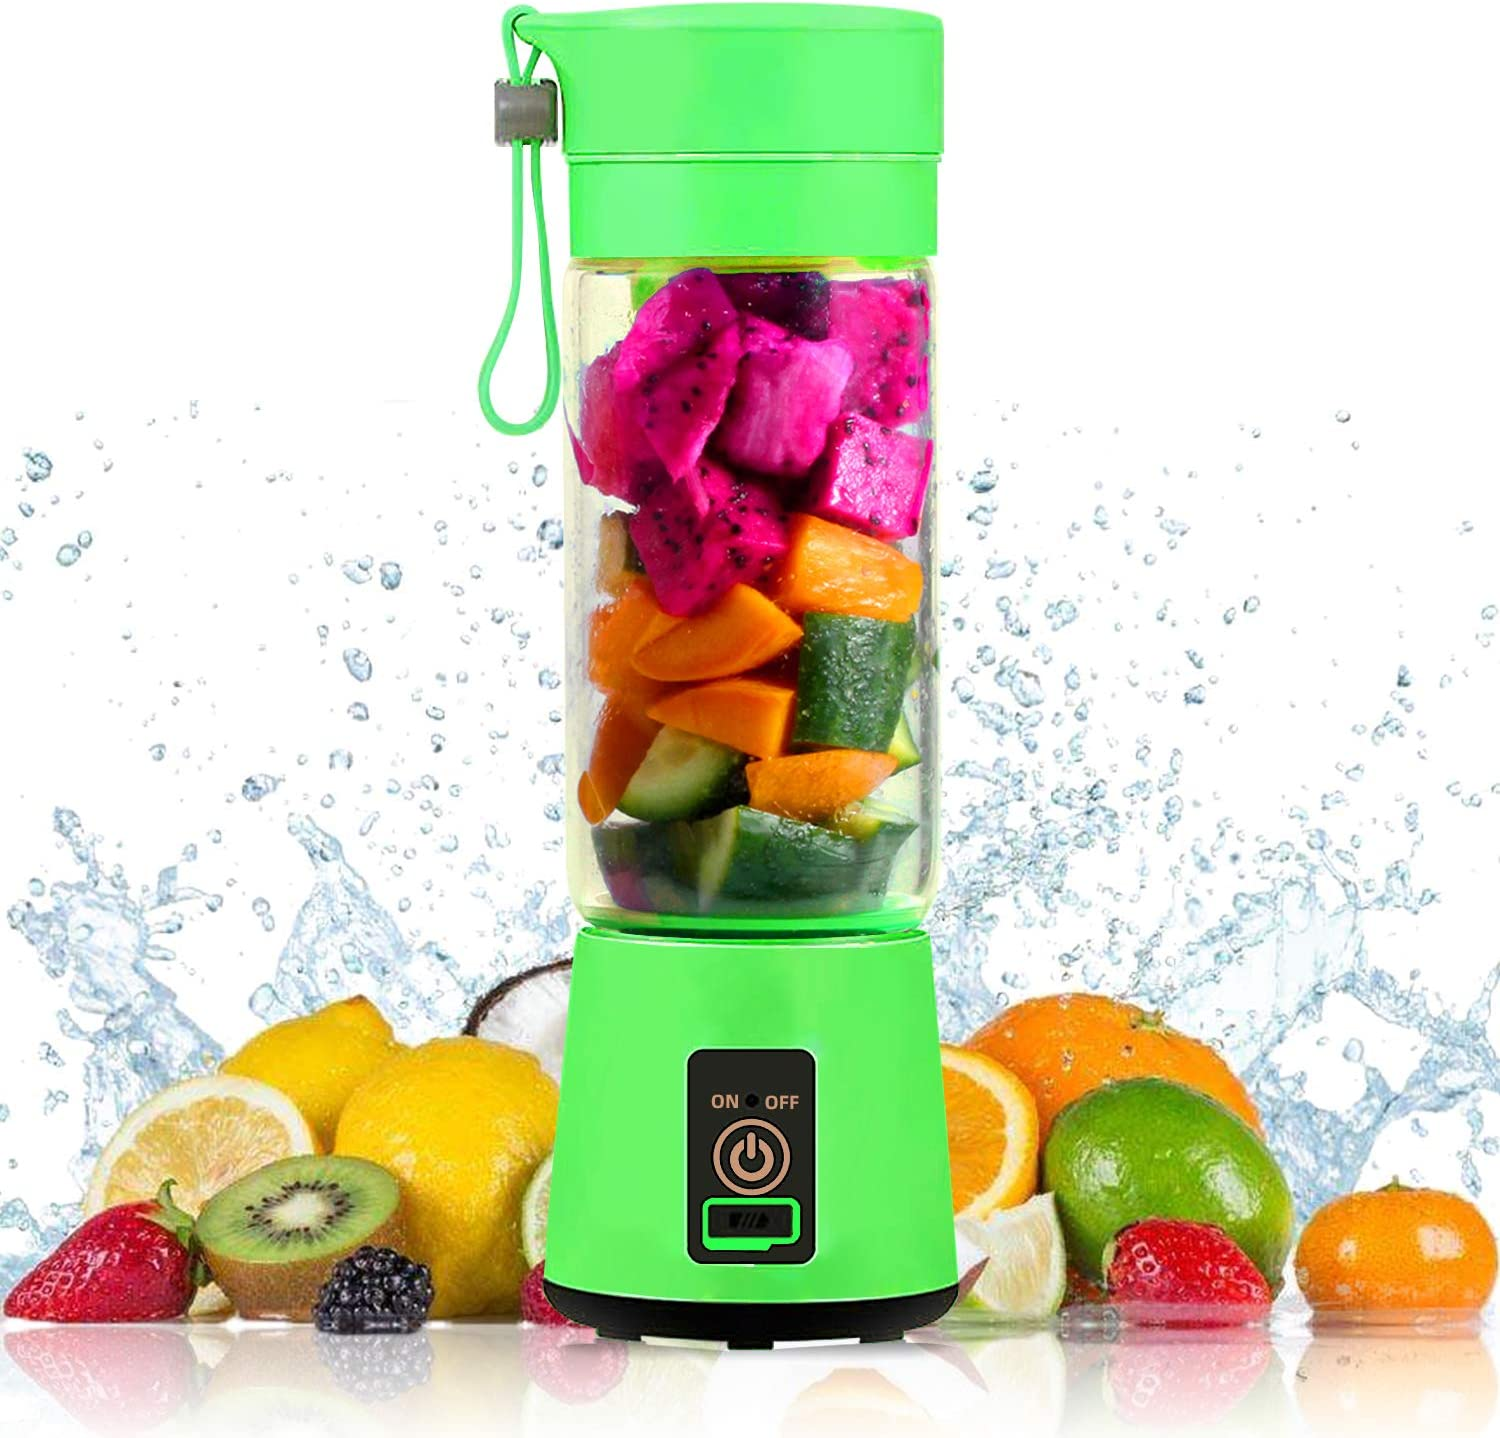 VOKUA Portable Blender, 4000mAh USB Rechargeble Mini Smoothies Juicer Cup Fruit Mixing Machine (380ml), Straws Set and Cleaning Brush Included, Perfect for Making Smoothies, Milk Shakes, Fruit Juice